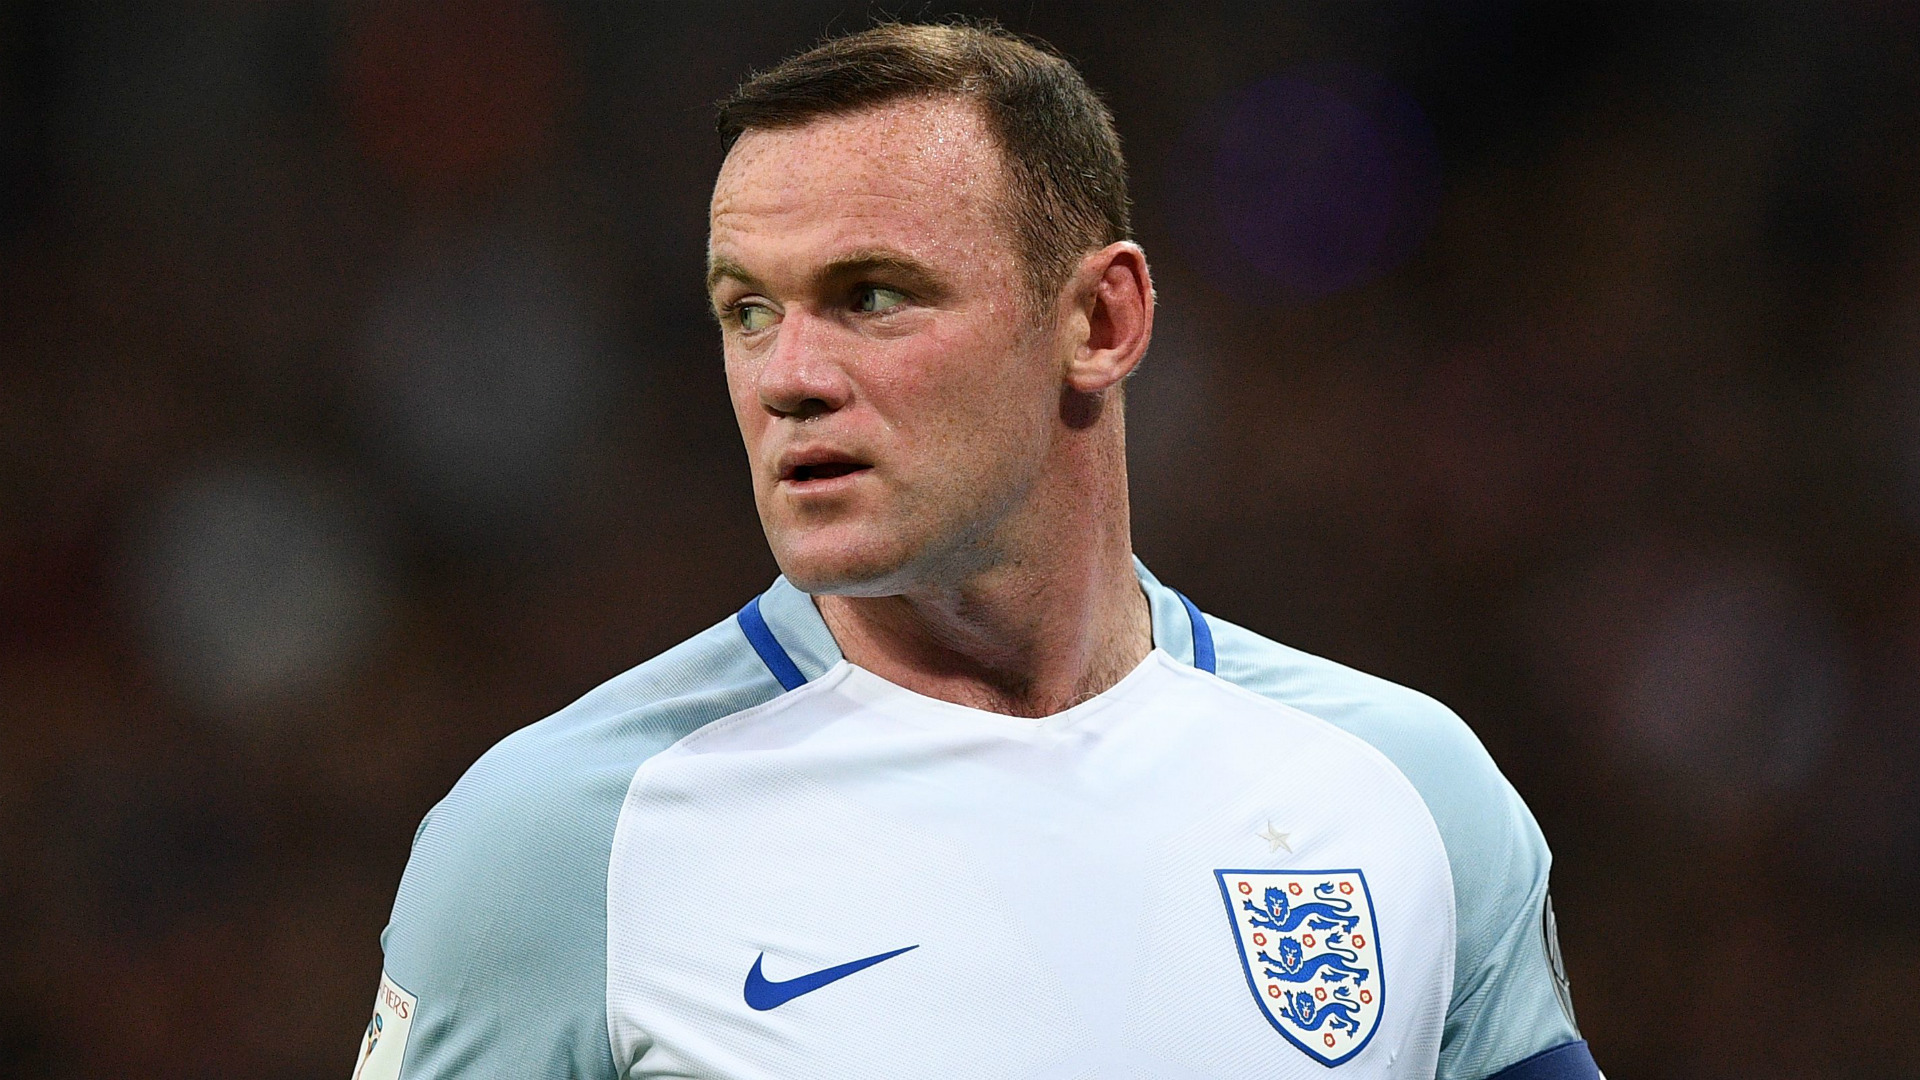 Rooney all smiles in England training ahead of Wembley farewell